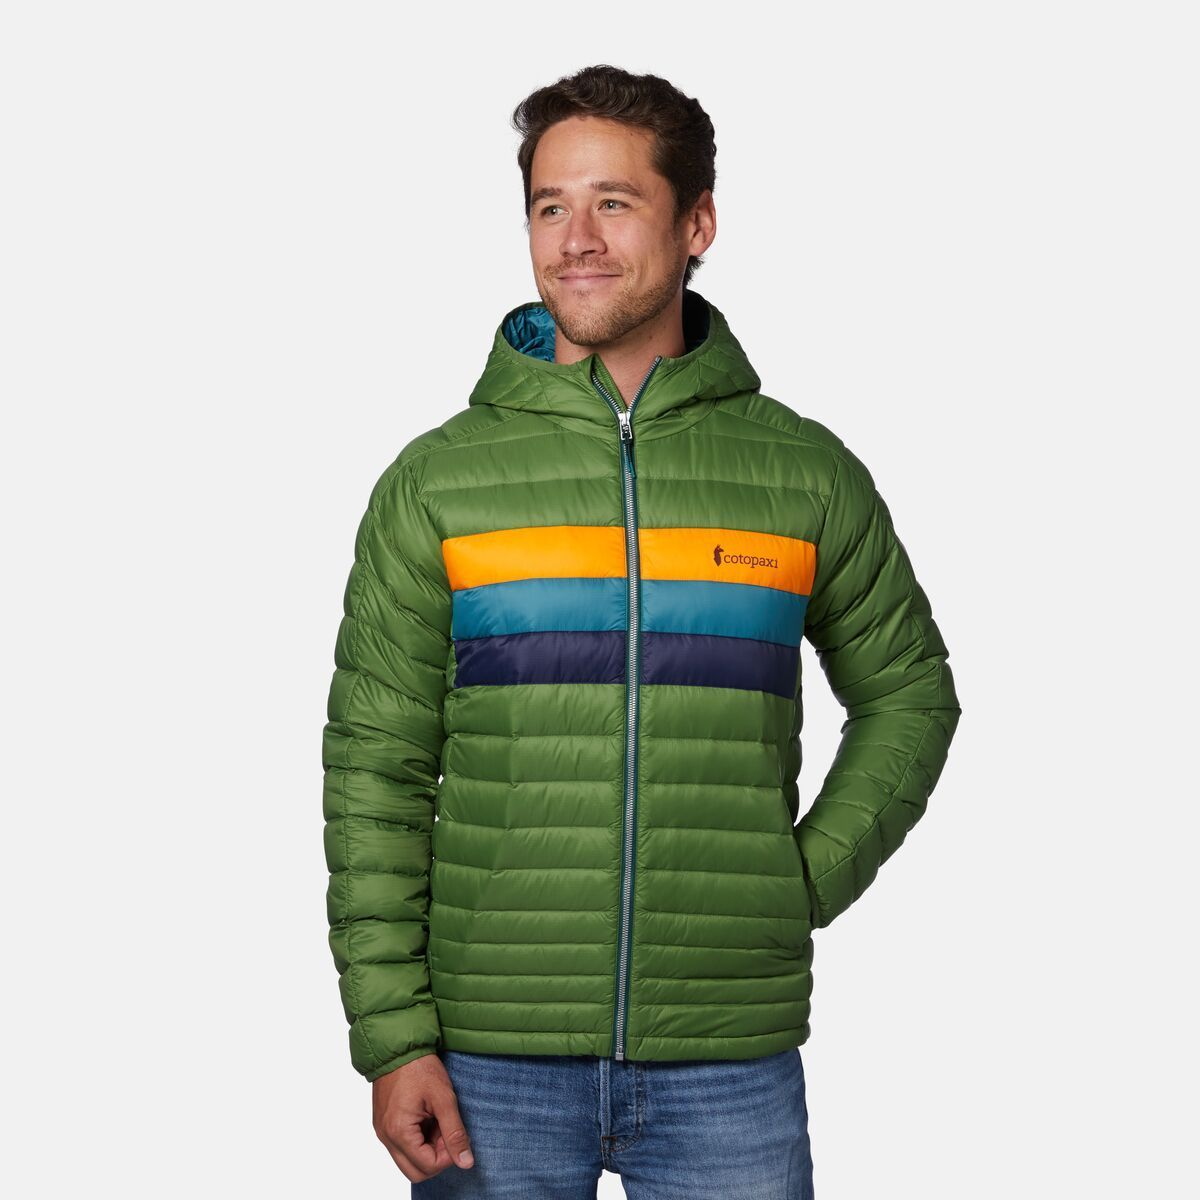 Cotopaxi Men's Fuego Down Hooded Jacket - Sale